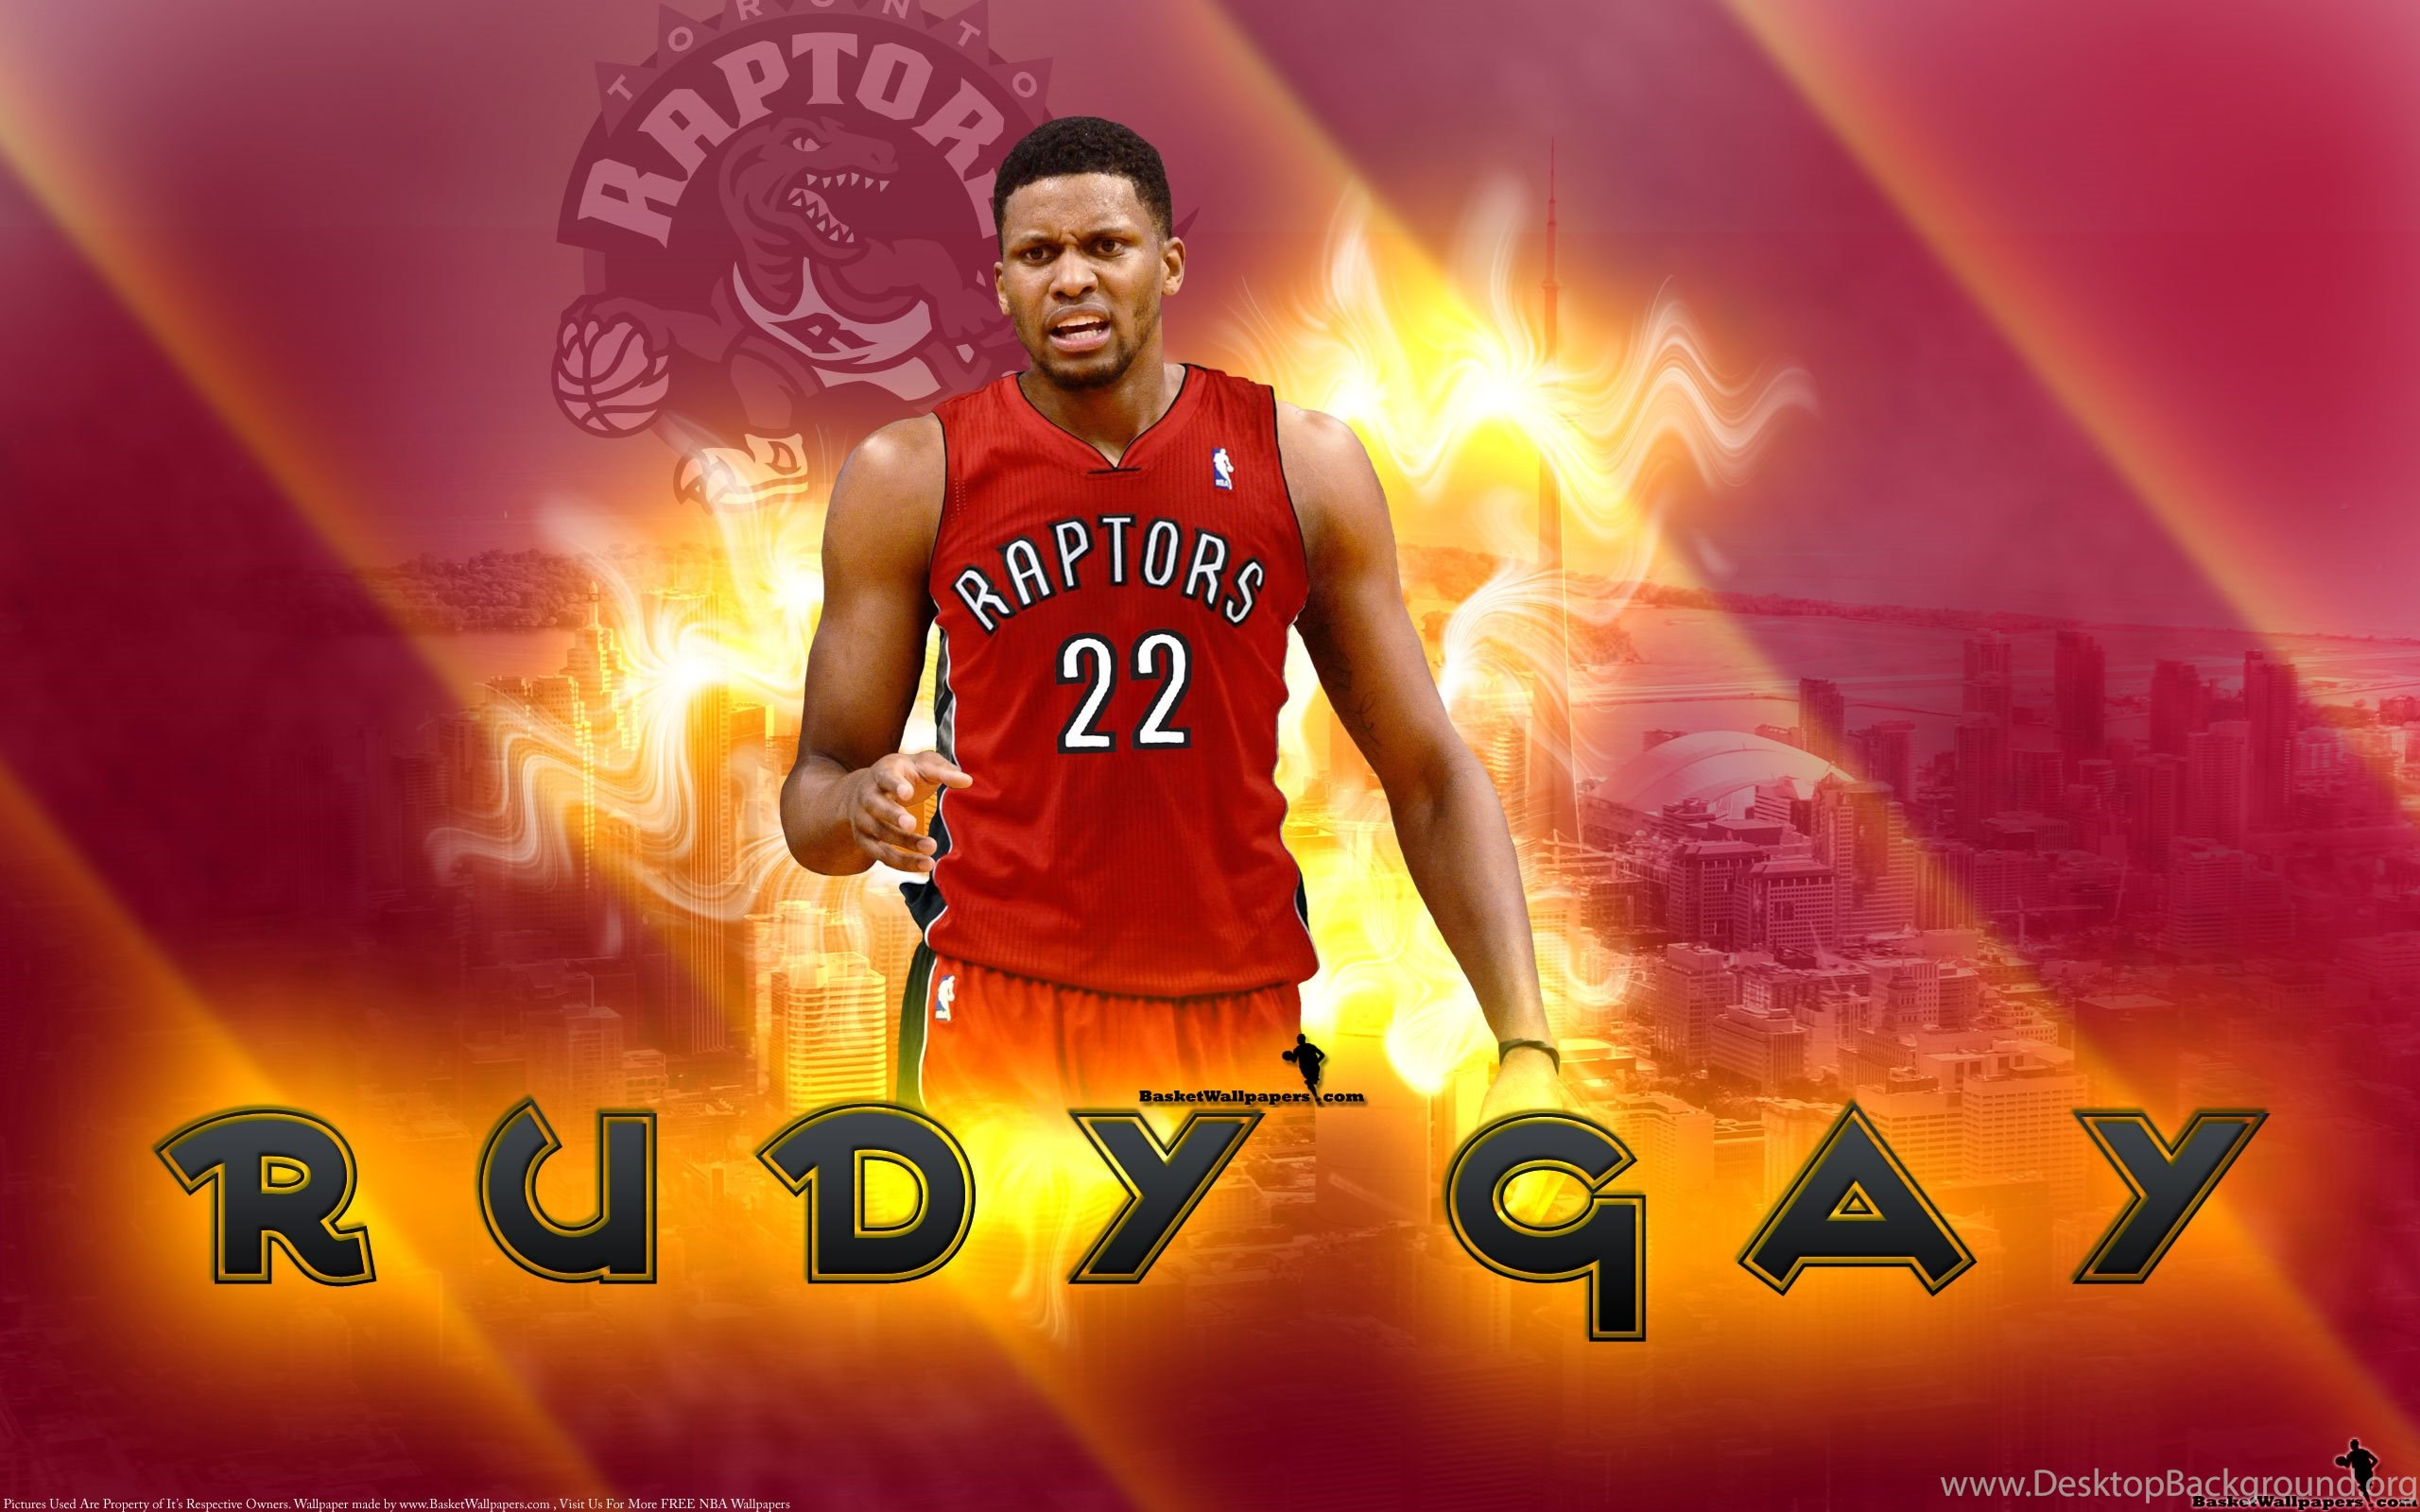 Rudy gay biography facts, childhood, family life, achievements